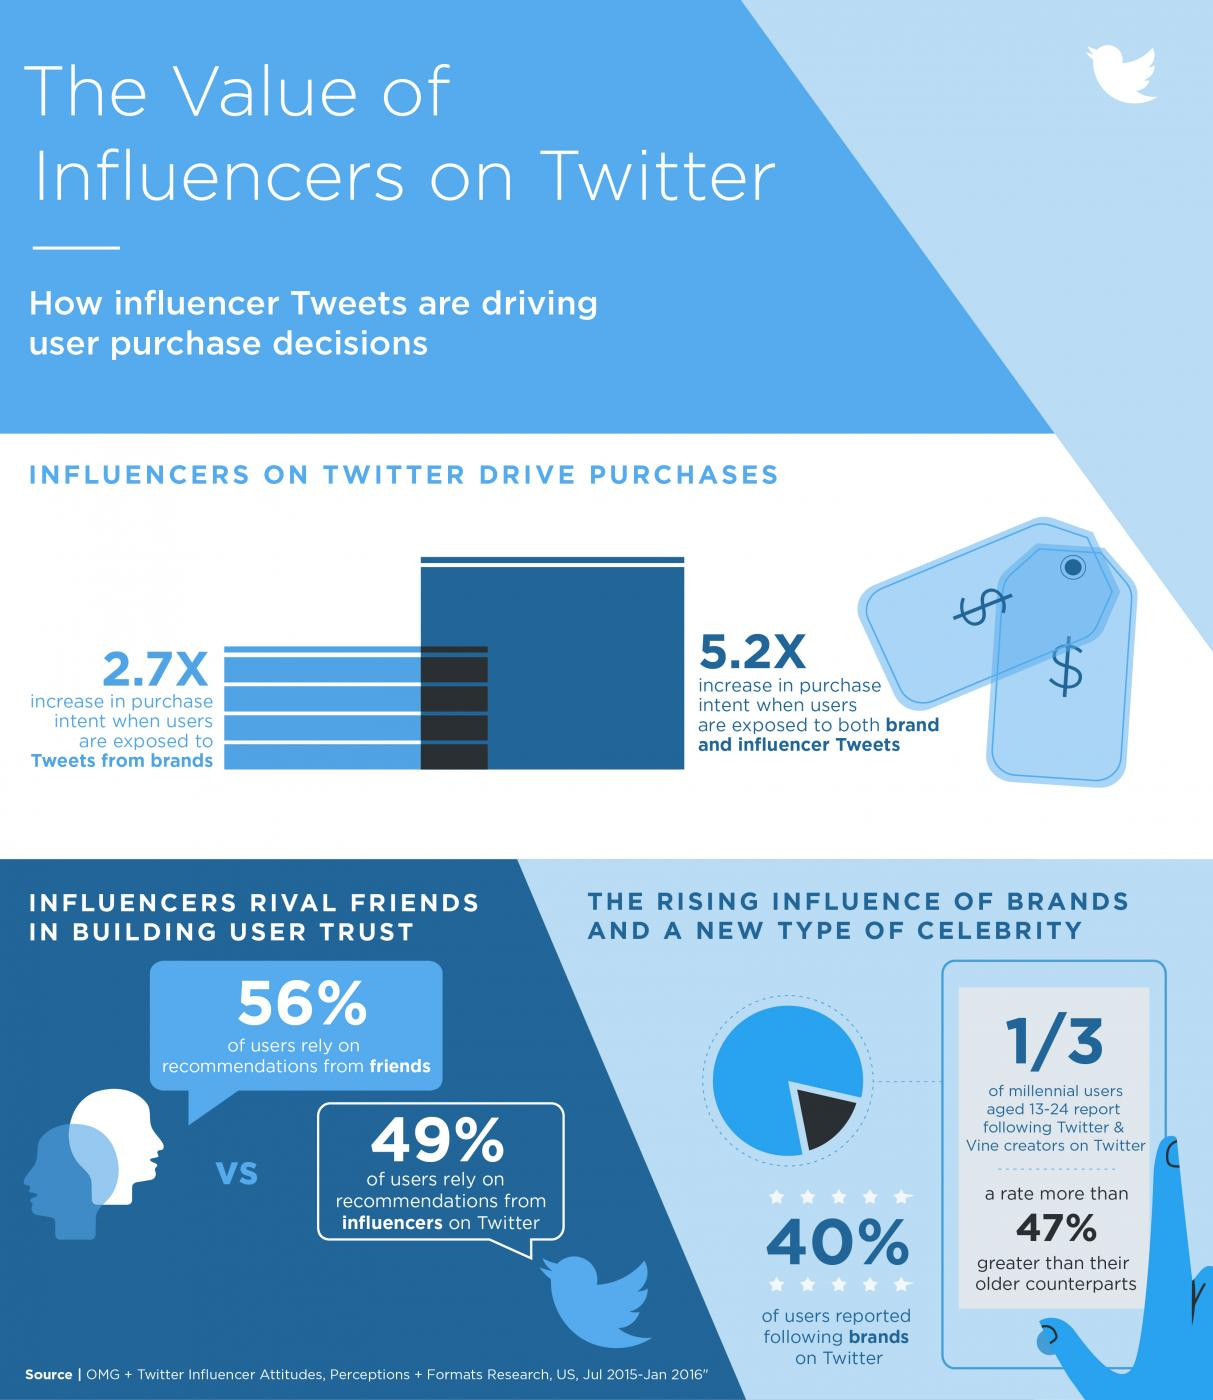 Twitter Releases New Data on the Value of Influencers [Infographic] | Social Media Today